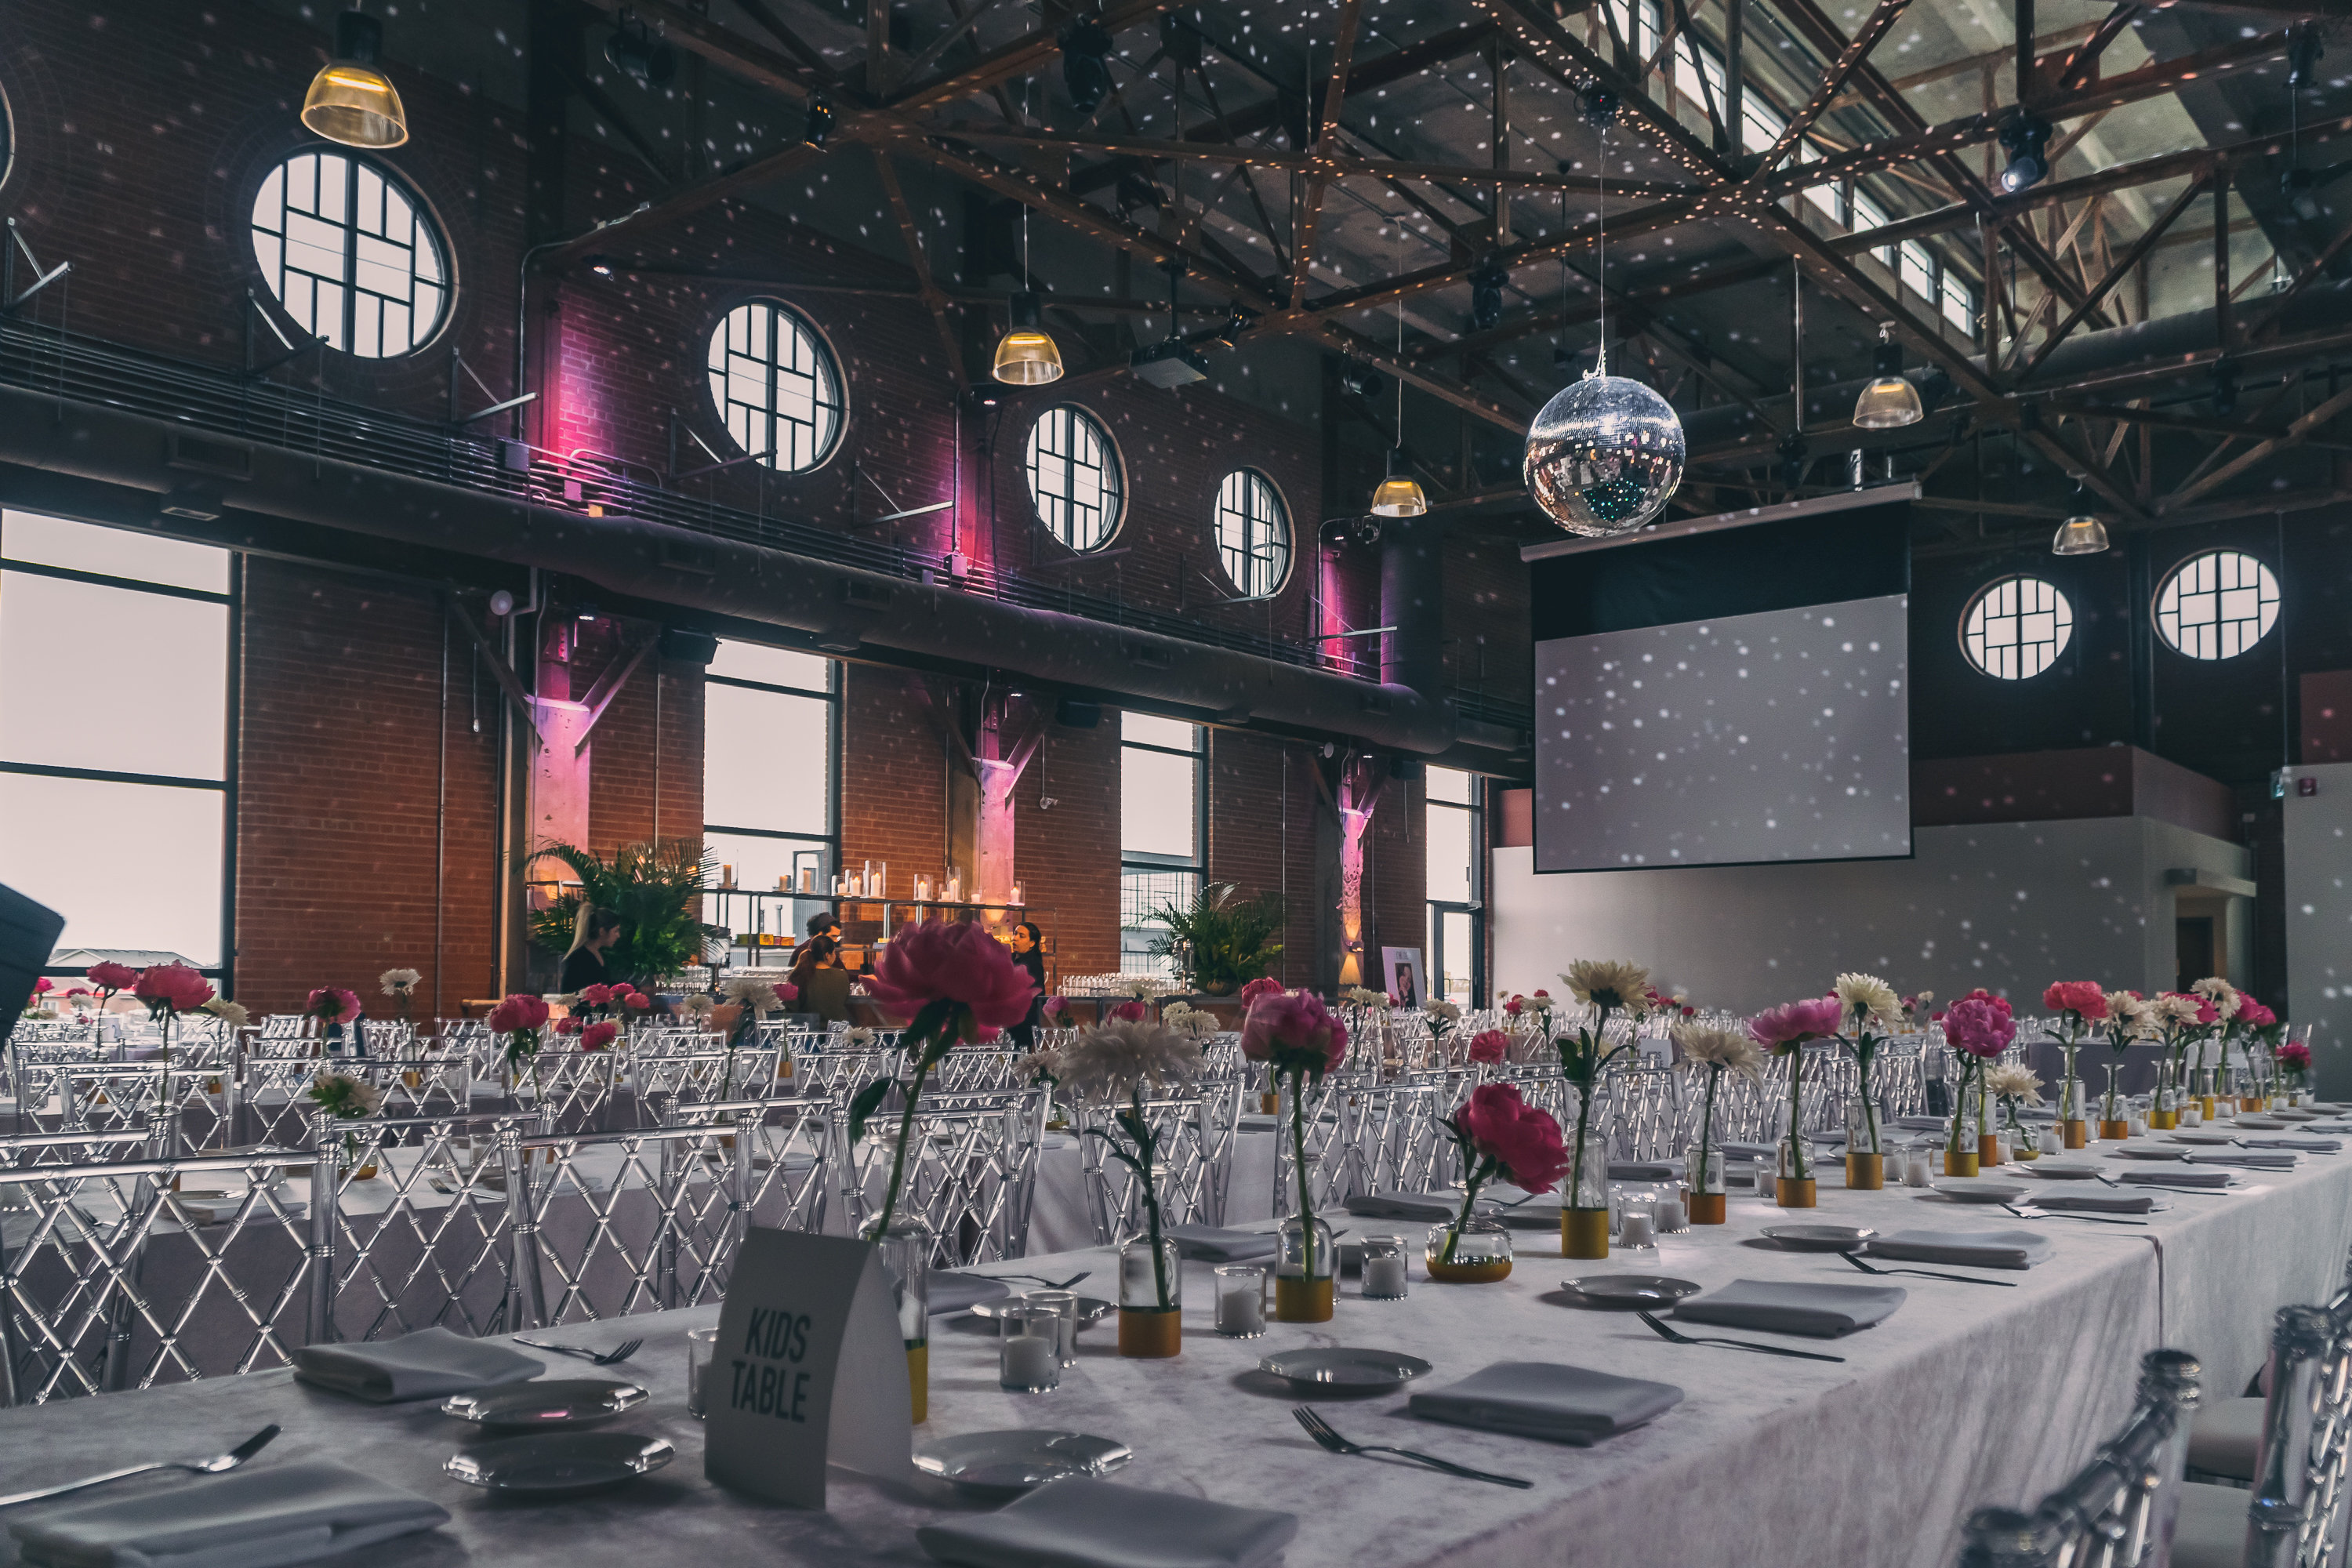 The Symes Bat Mitzvah